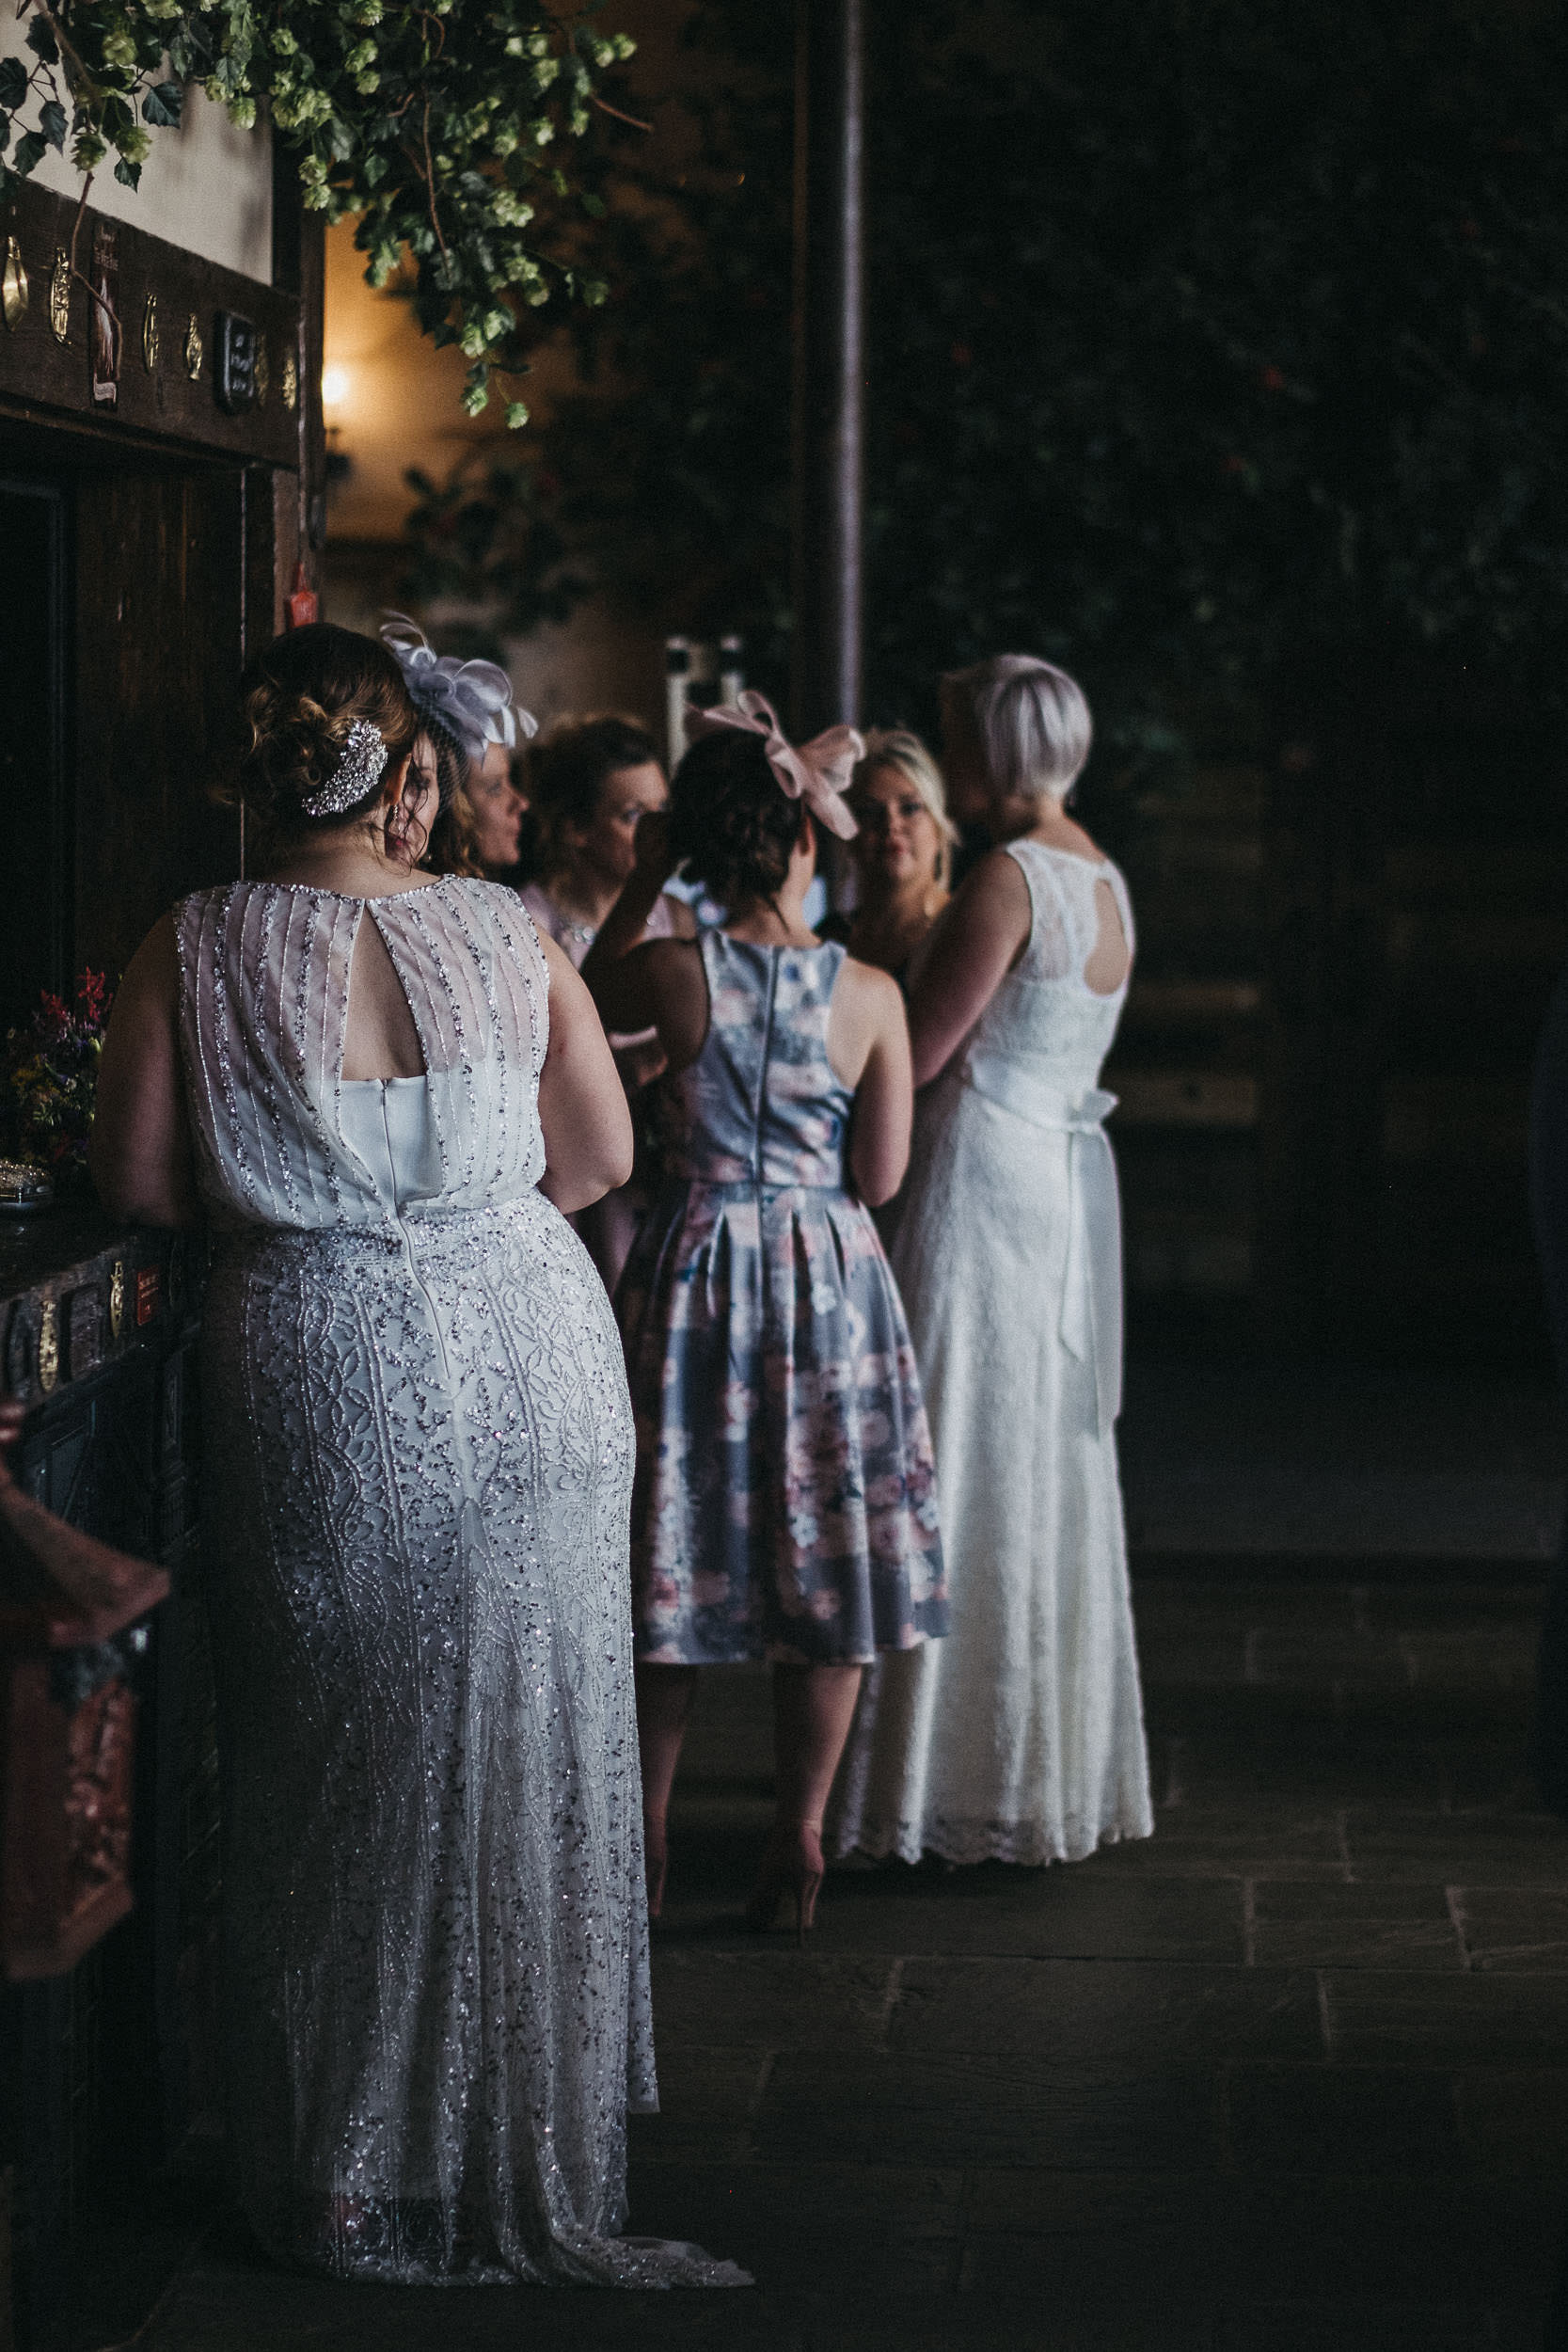 One bride leans on bar while looking at another bride talking with wedding guests